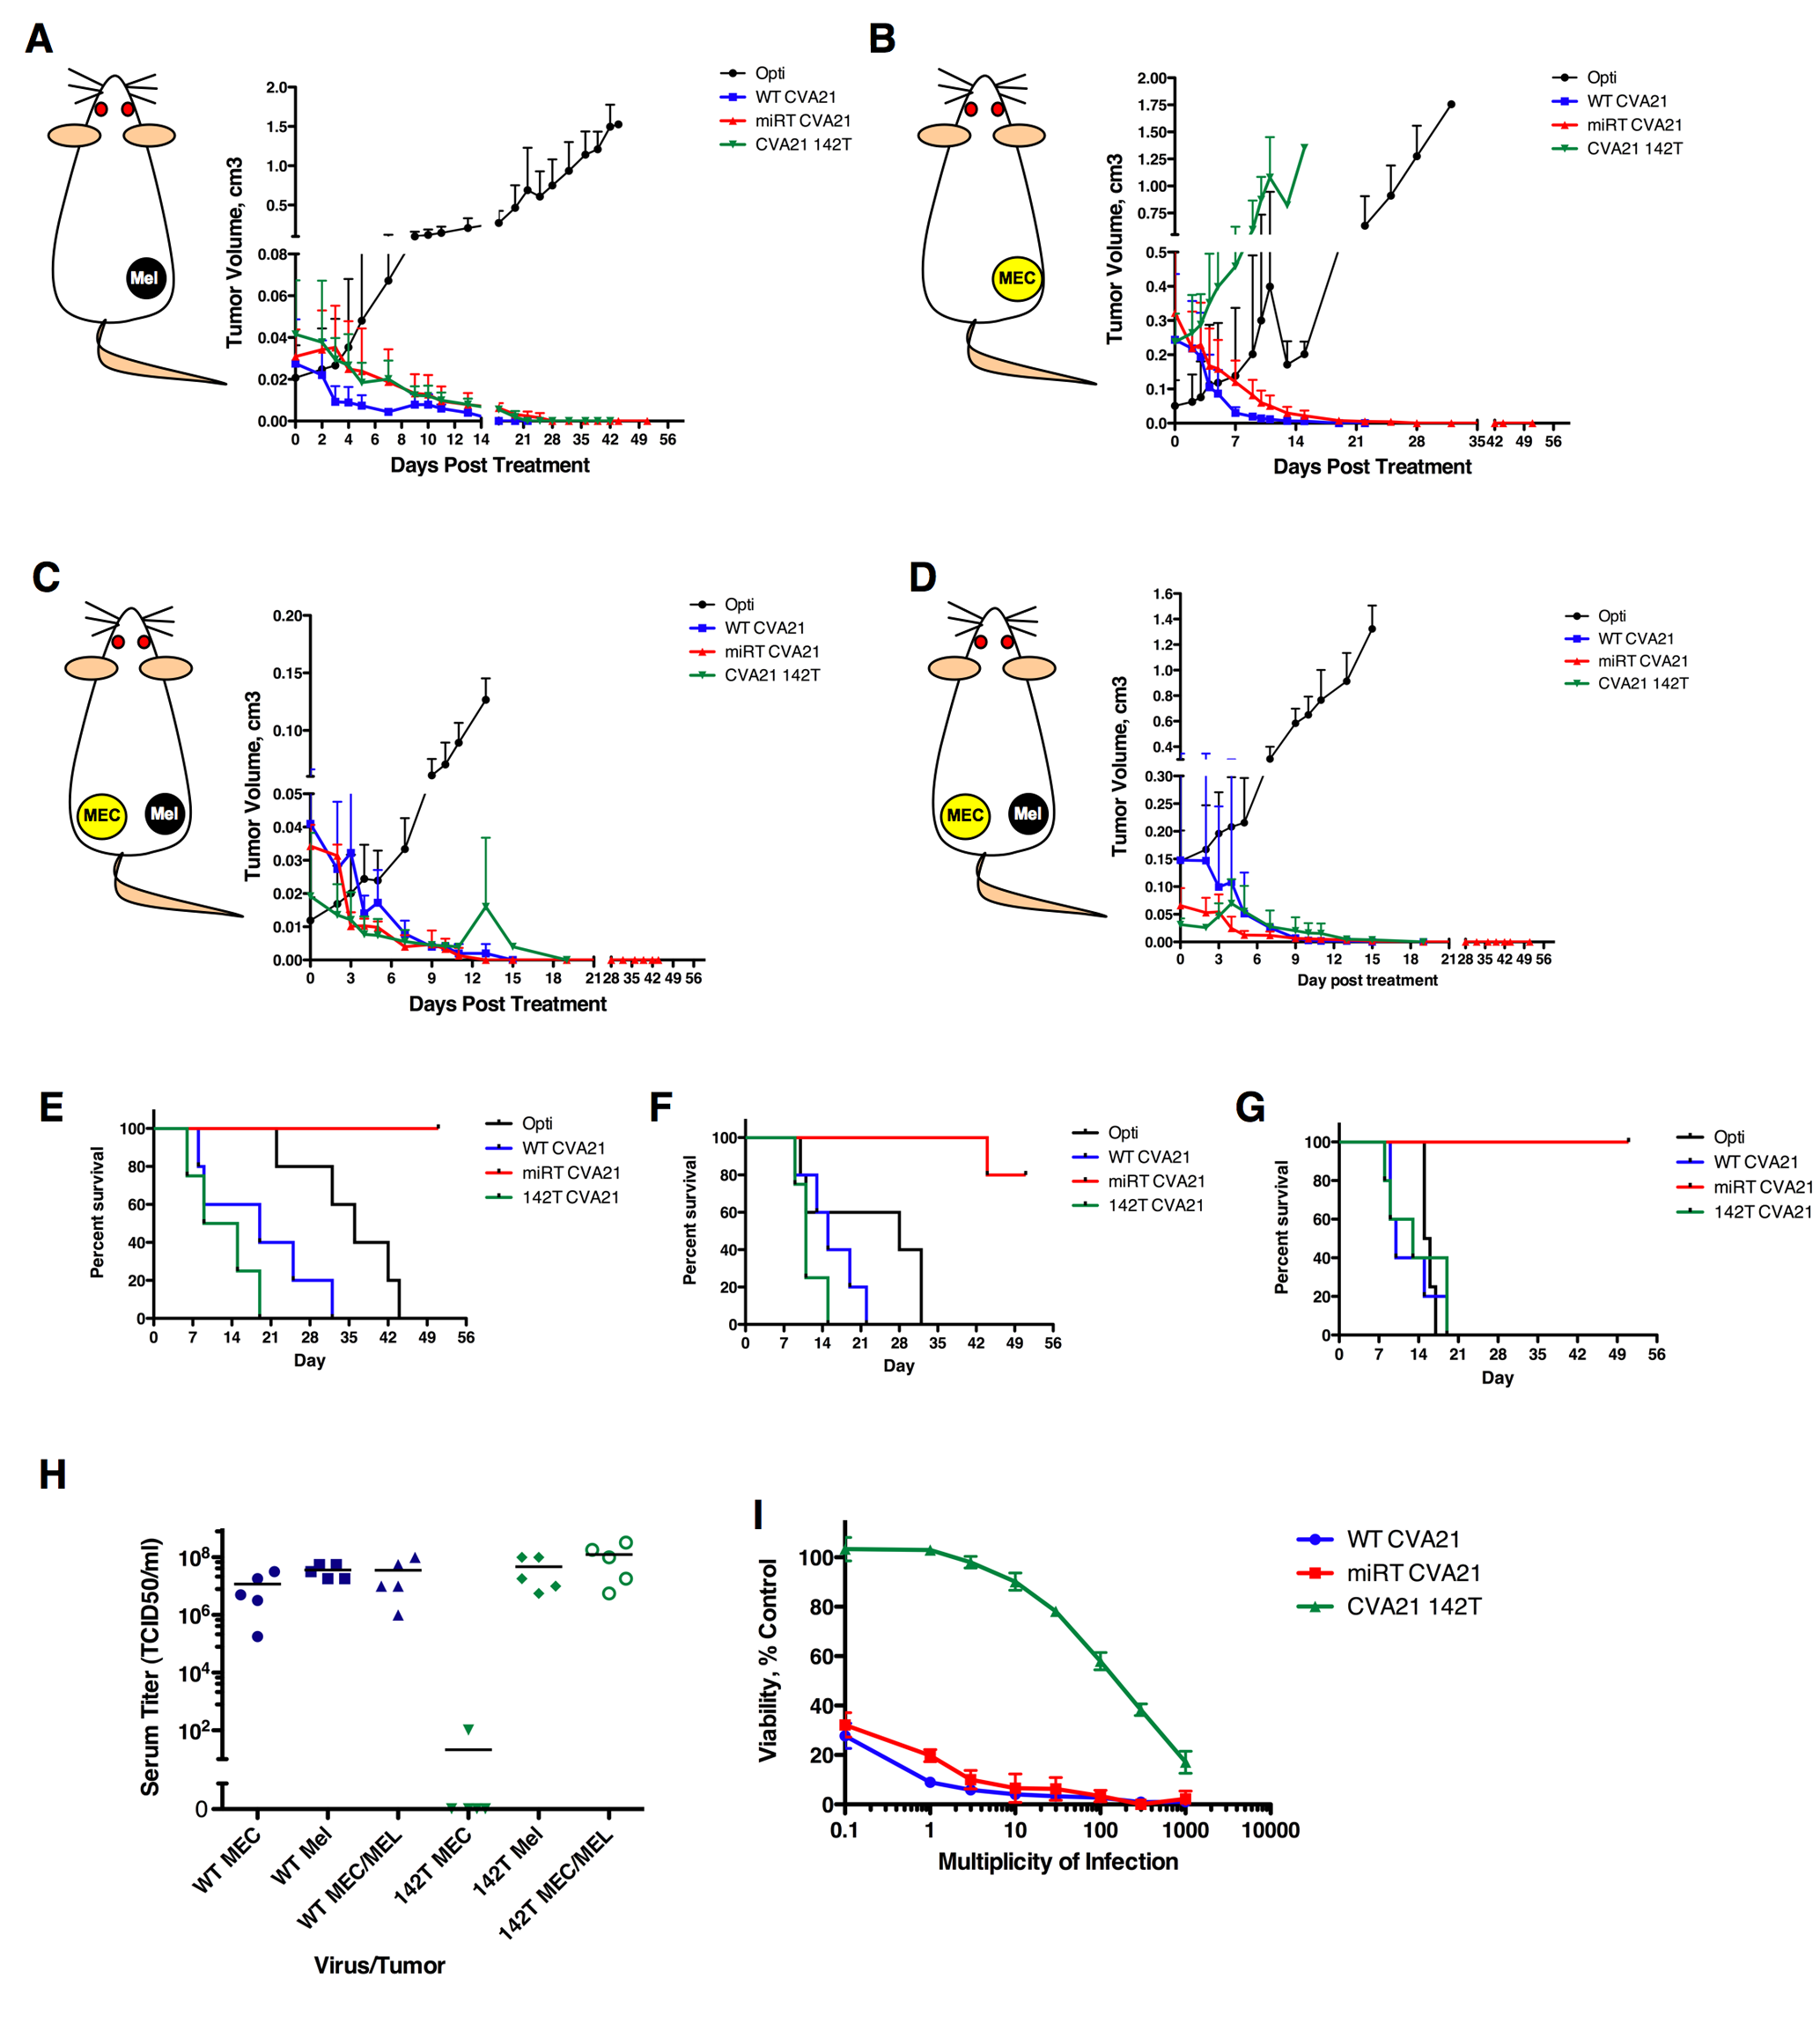 MicroRNAs regulate virus tropism in vivo, but can be saturated by high-level viremia.